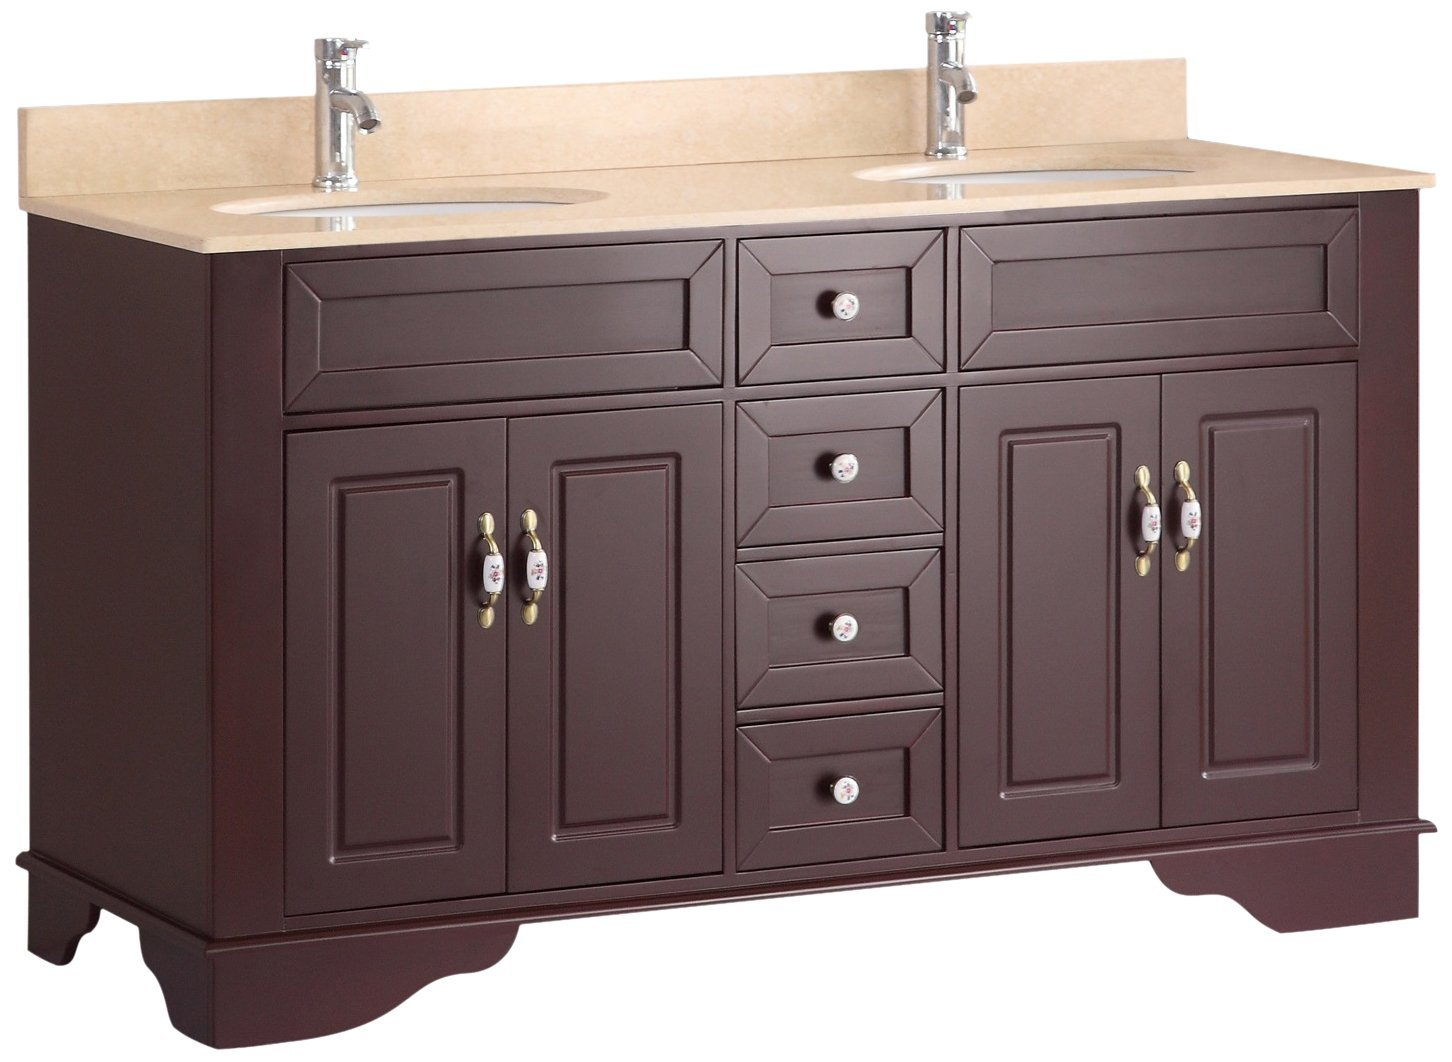 Bosconi A-5092B 59 Inch Free Standing Vanity Set with Wood Cabinet, Marble Top, and 2 Undermount Sinks in Amber Red